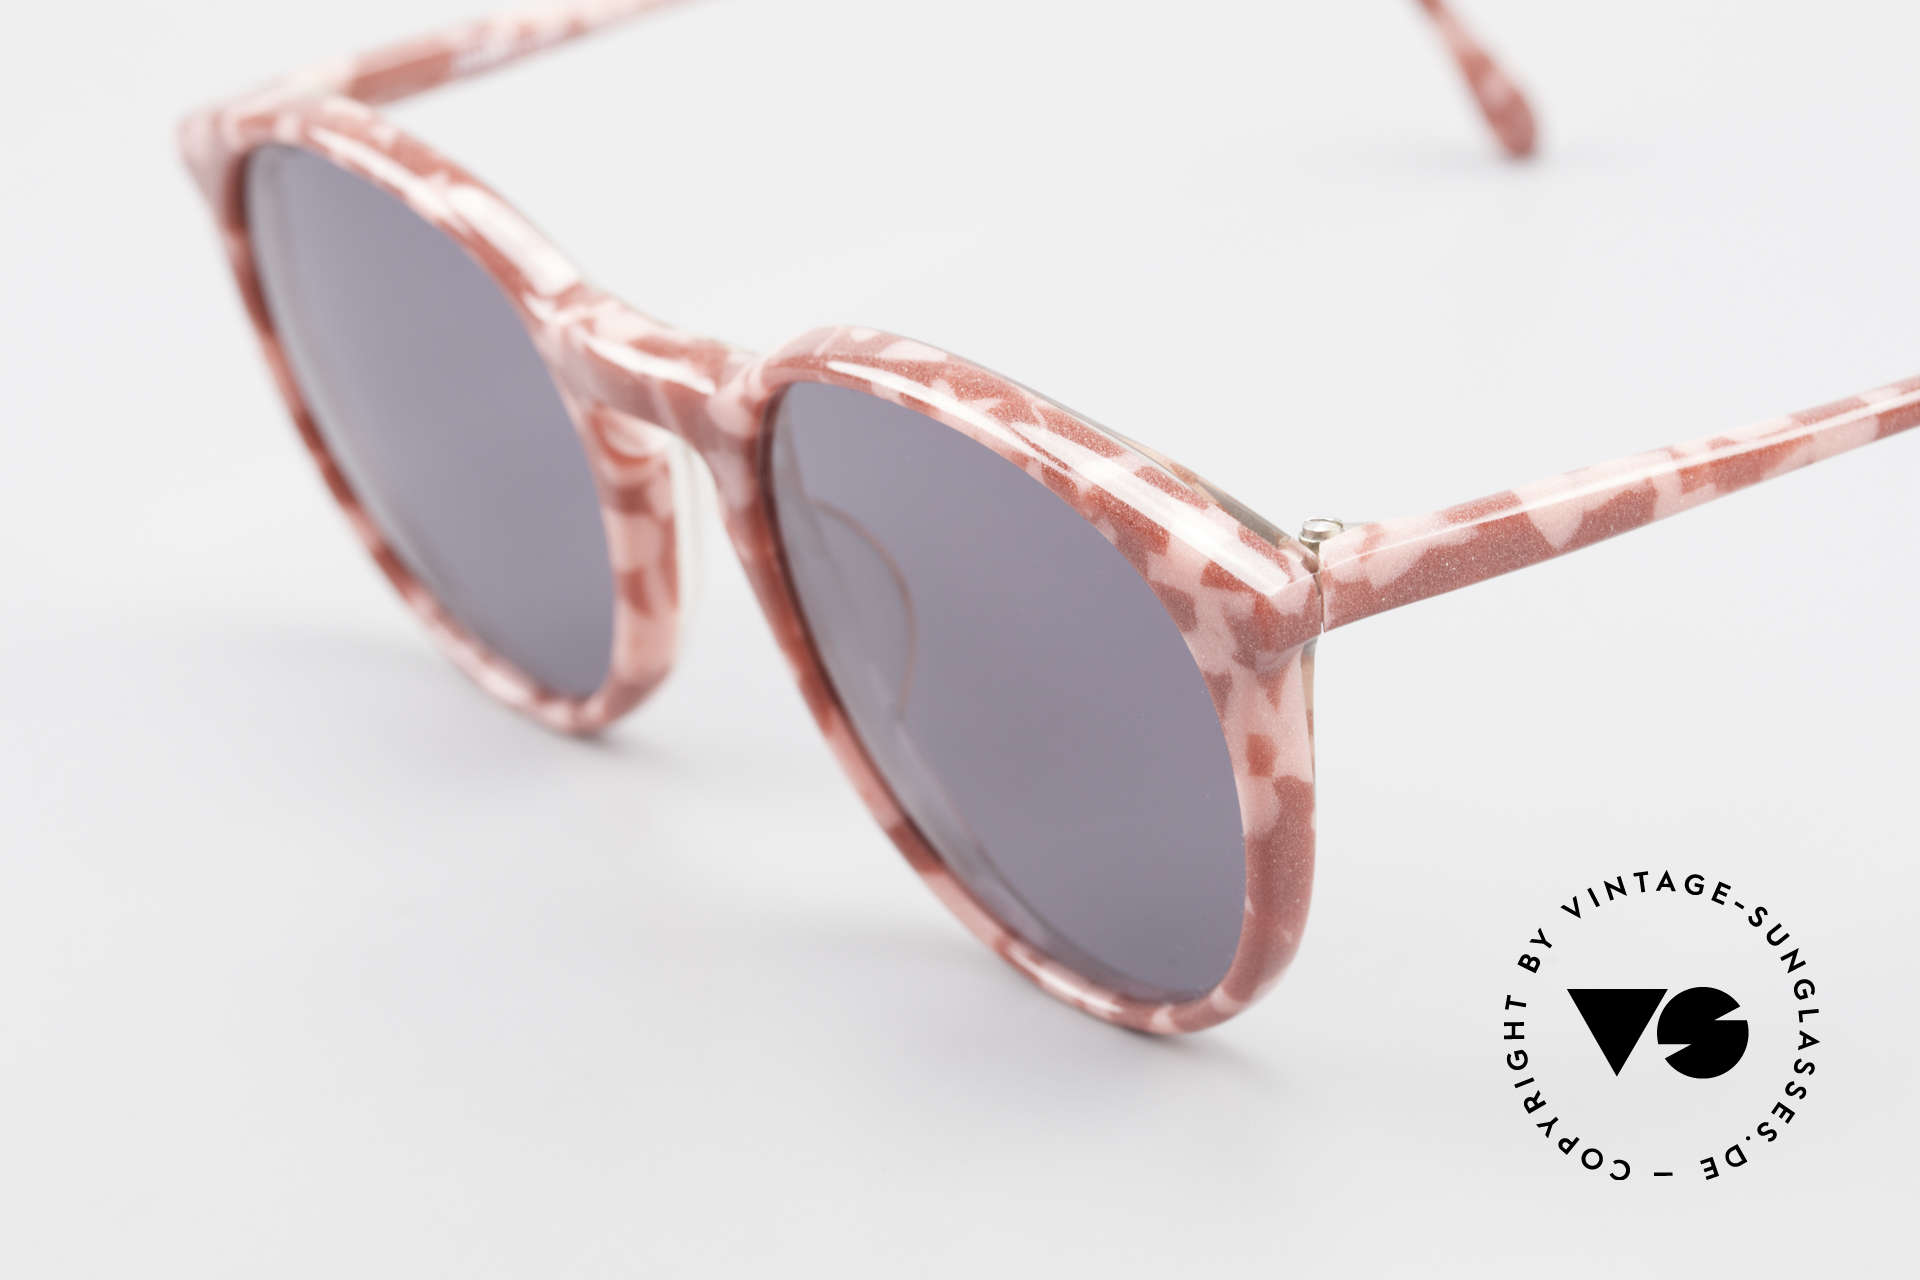 Alain Mikli 901 / 172 Panto Shades Red Pink Marbled, handmade quality and 125mm width = S - M size!, Made for Women